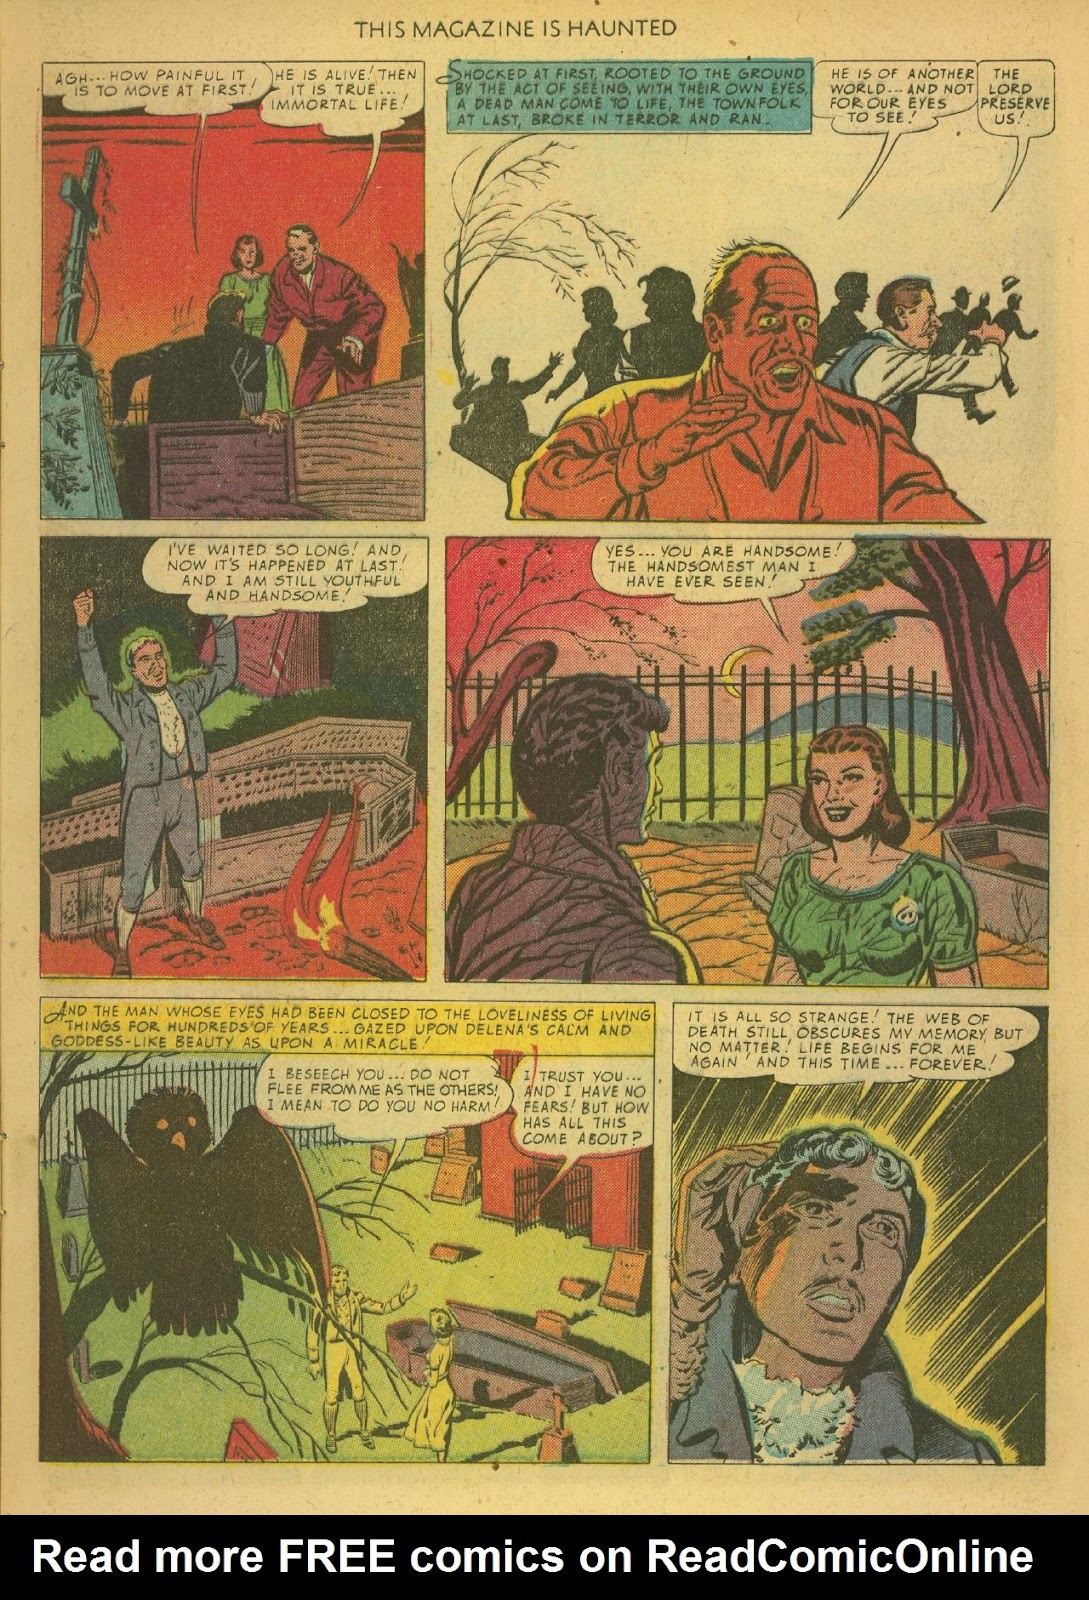 Read online This Magazine Is Haunted comic -  Issue #1 - 9